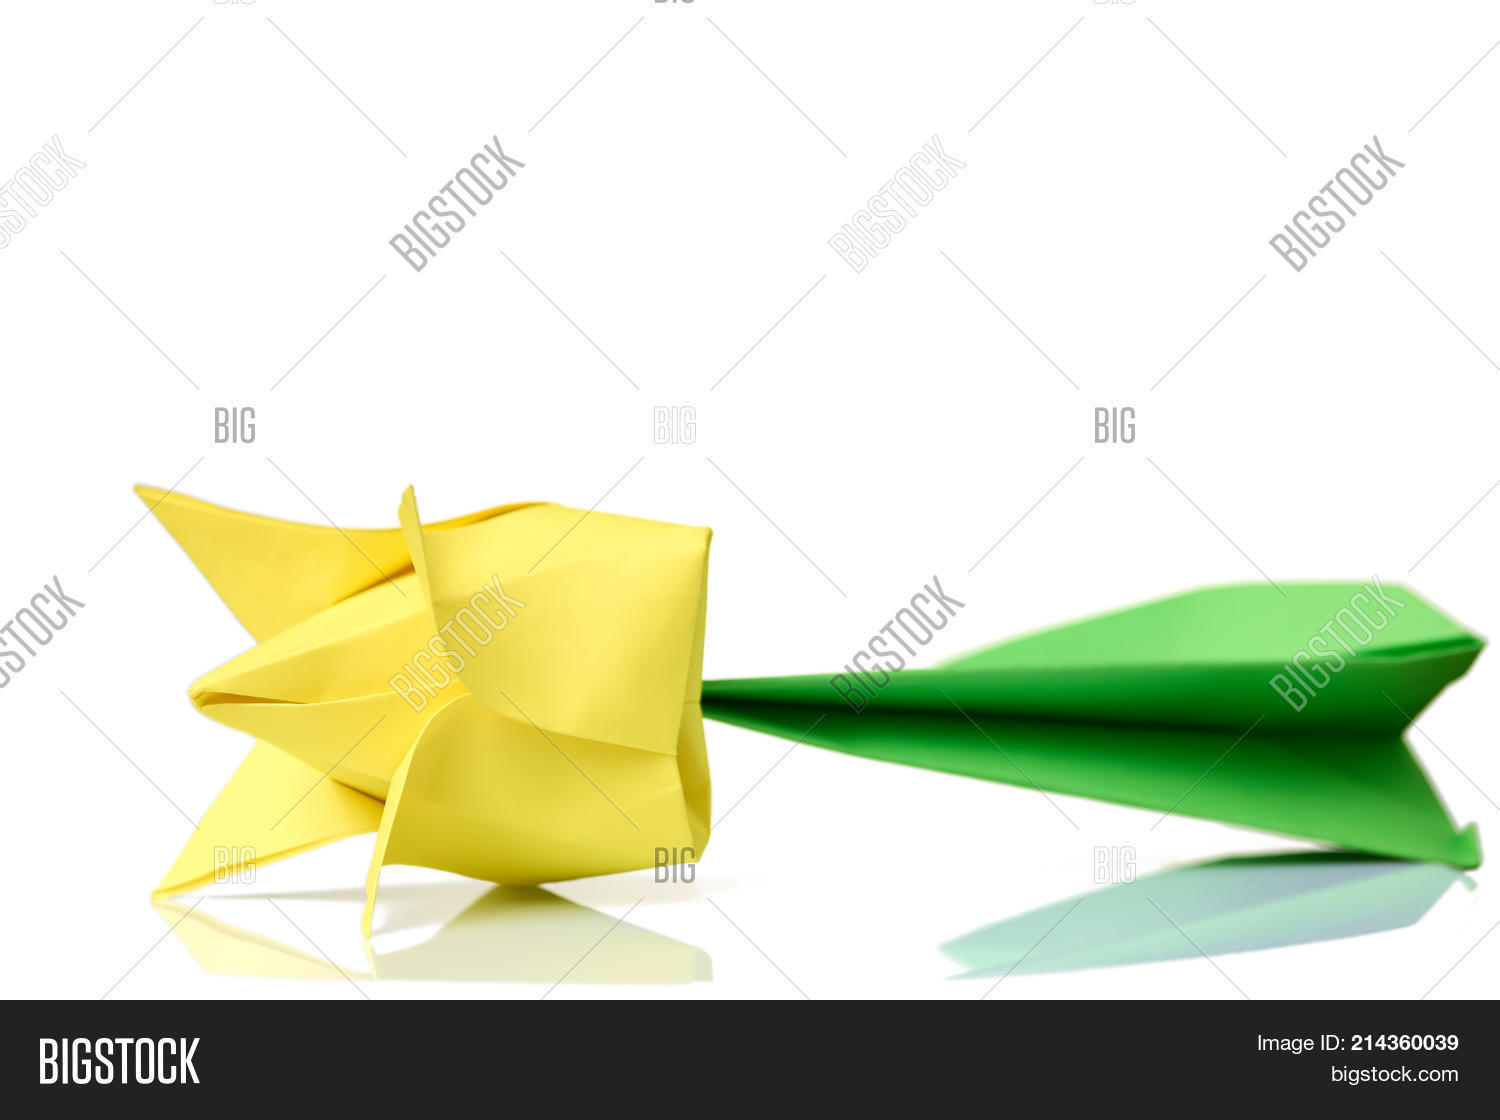 How to Make an Origami Tulip Flower & Stem   1120x1500